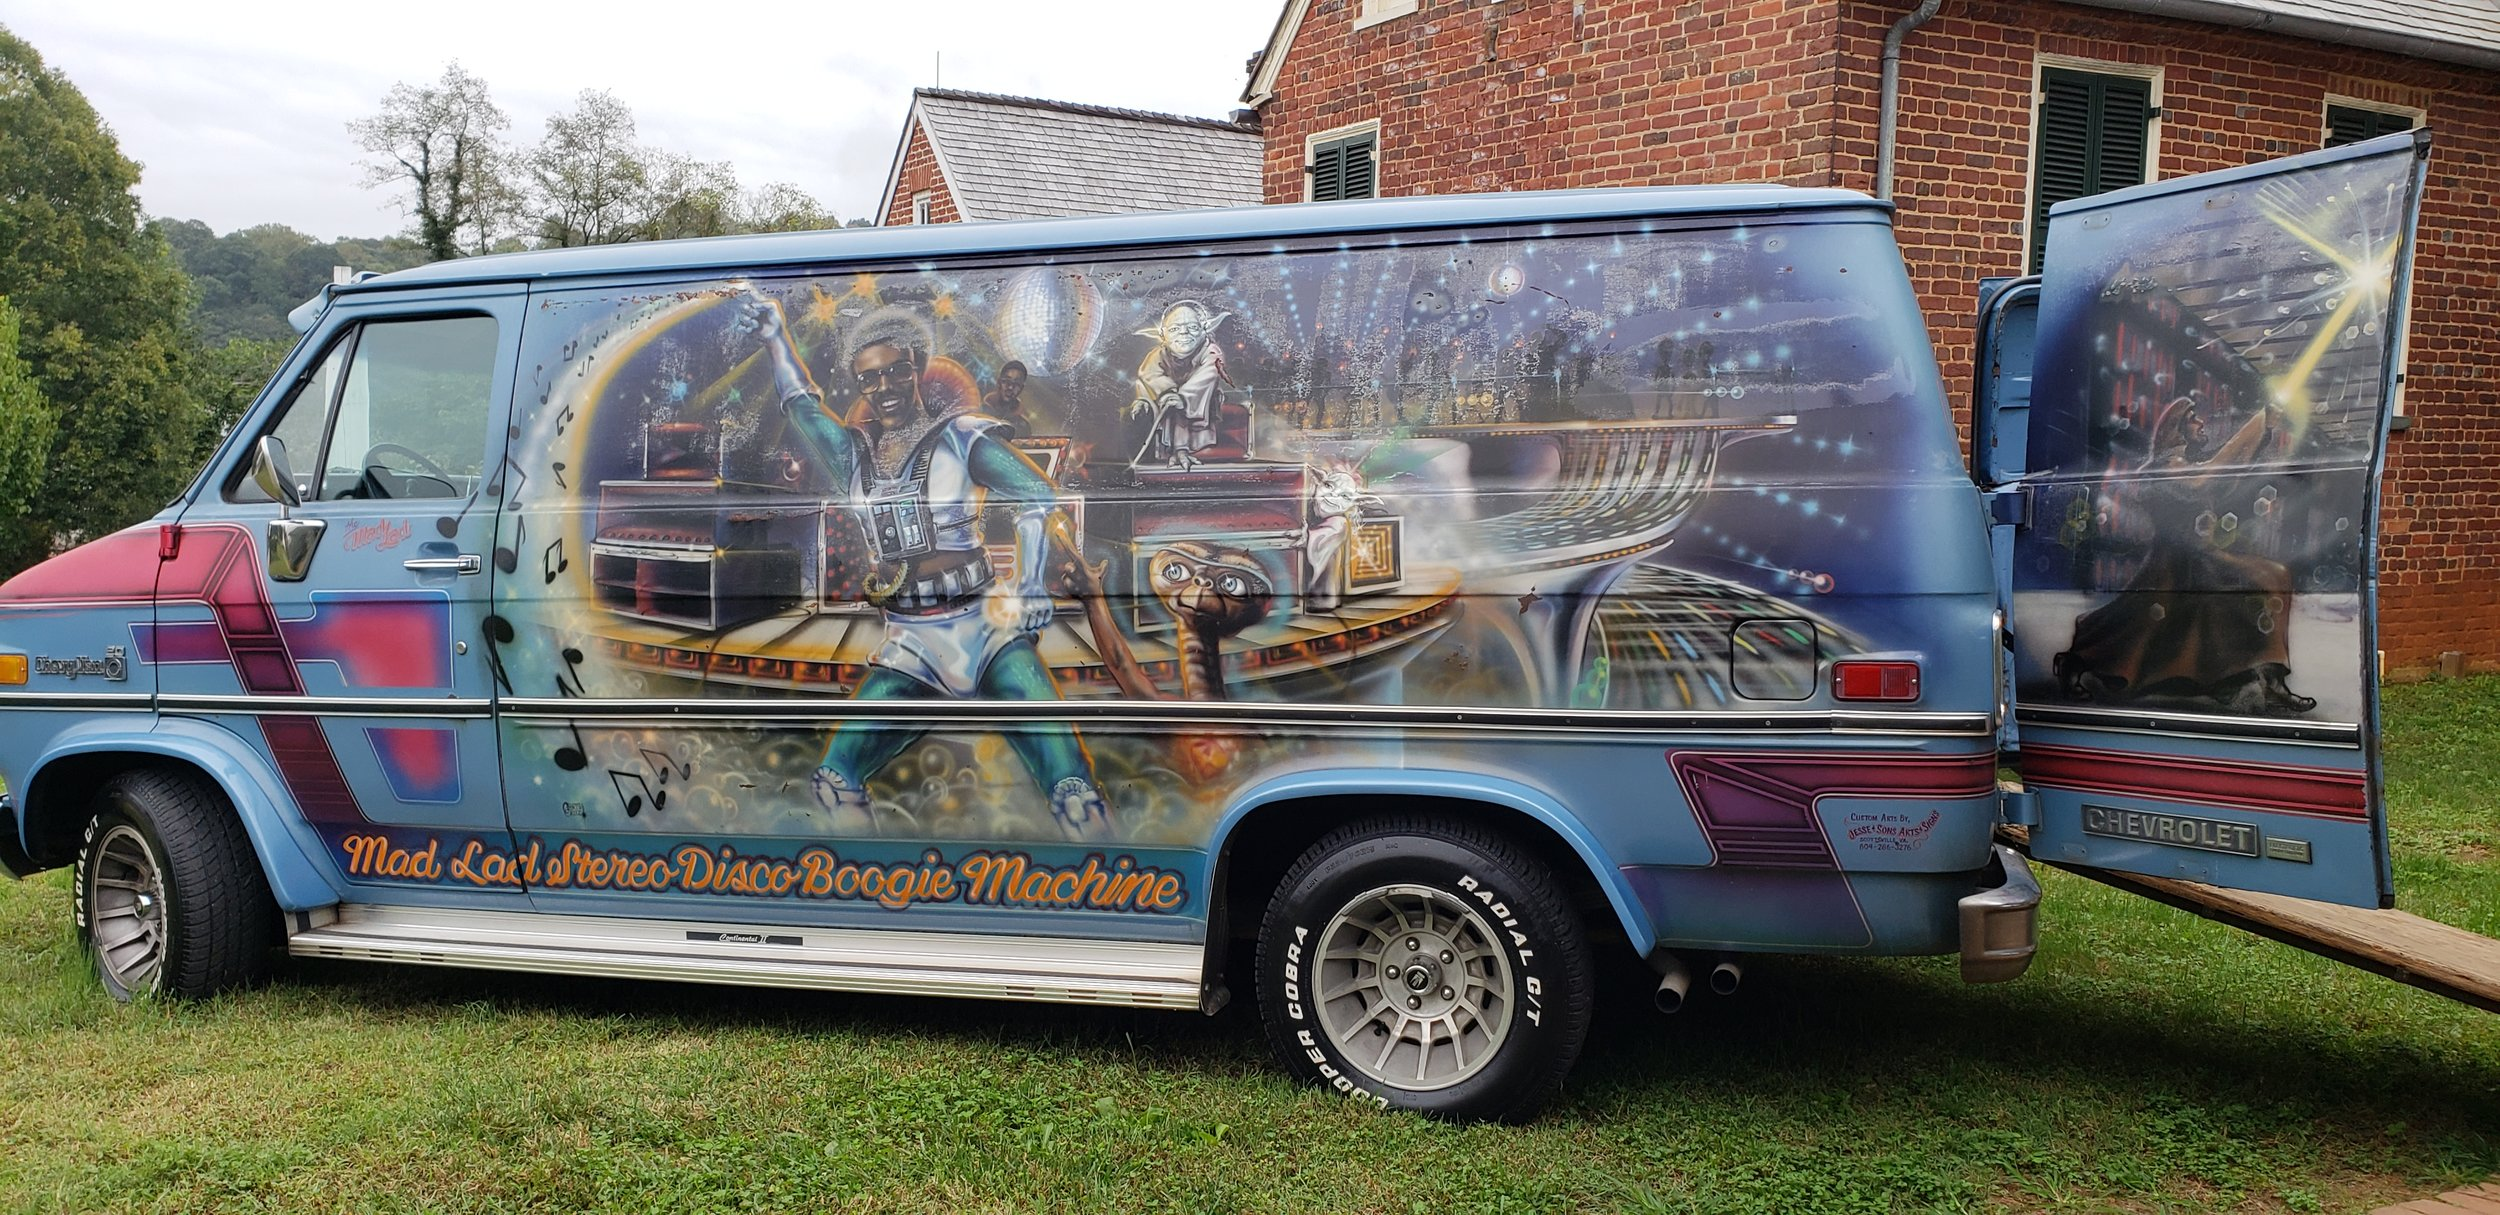 A recognizable van with an image of Goins painted on the side.